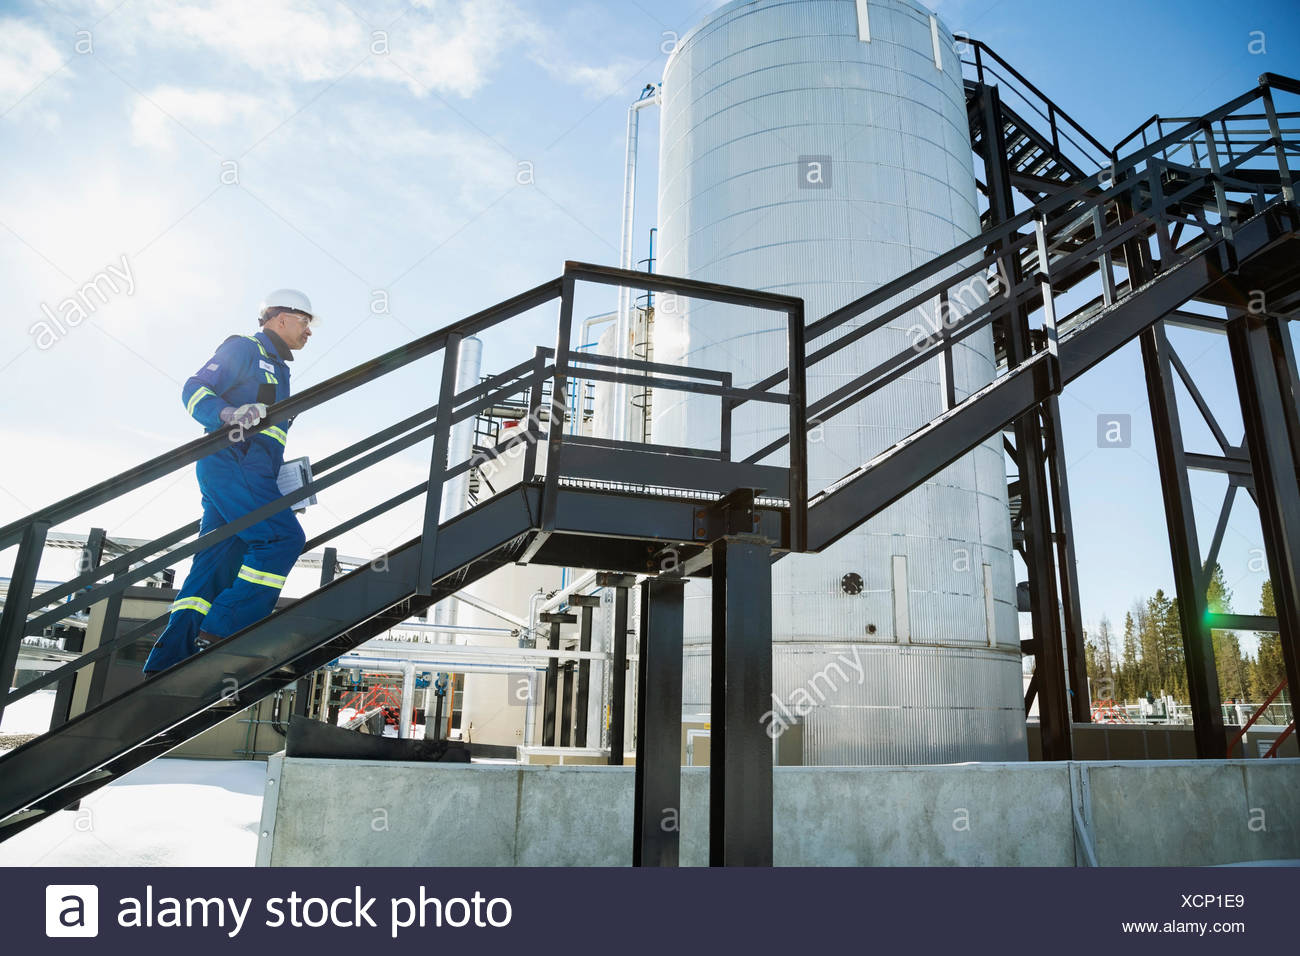 Male worker ascending platform stairs at gas plant - Stock Image